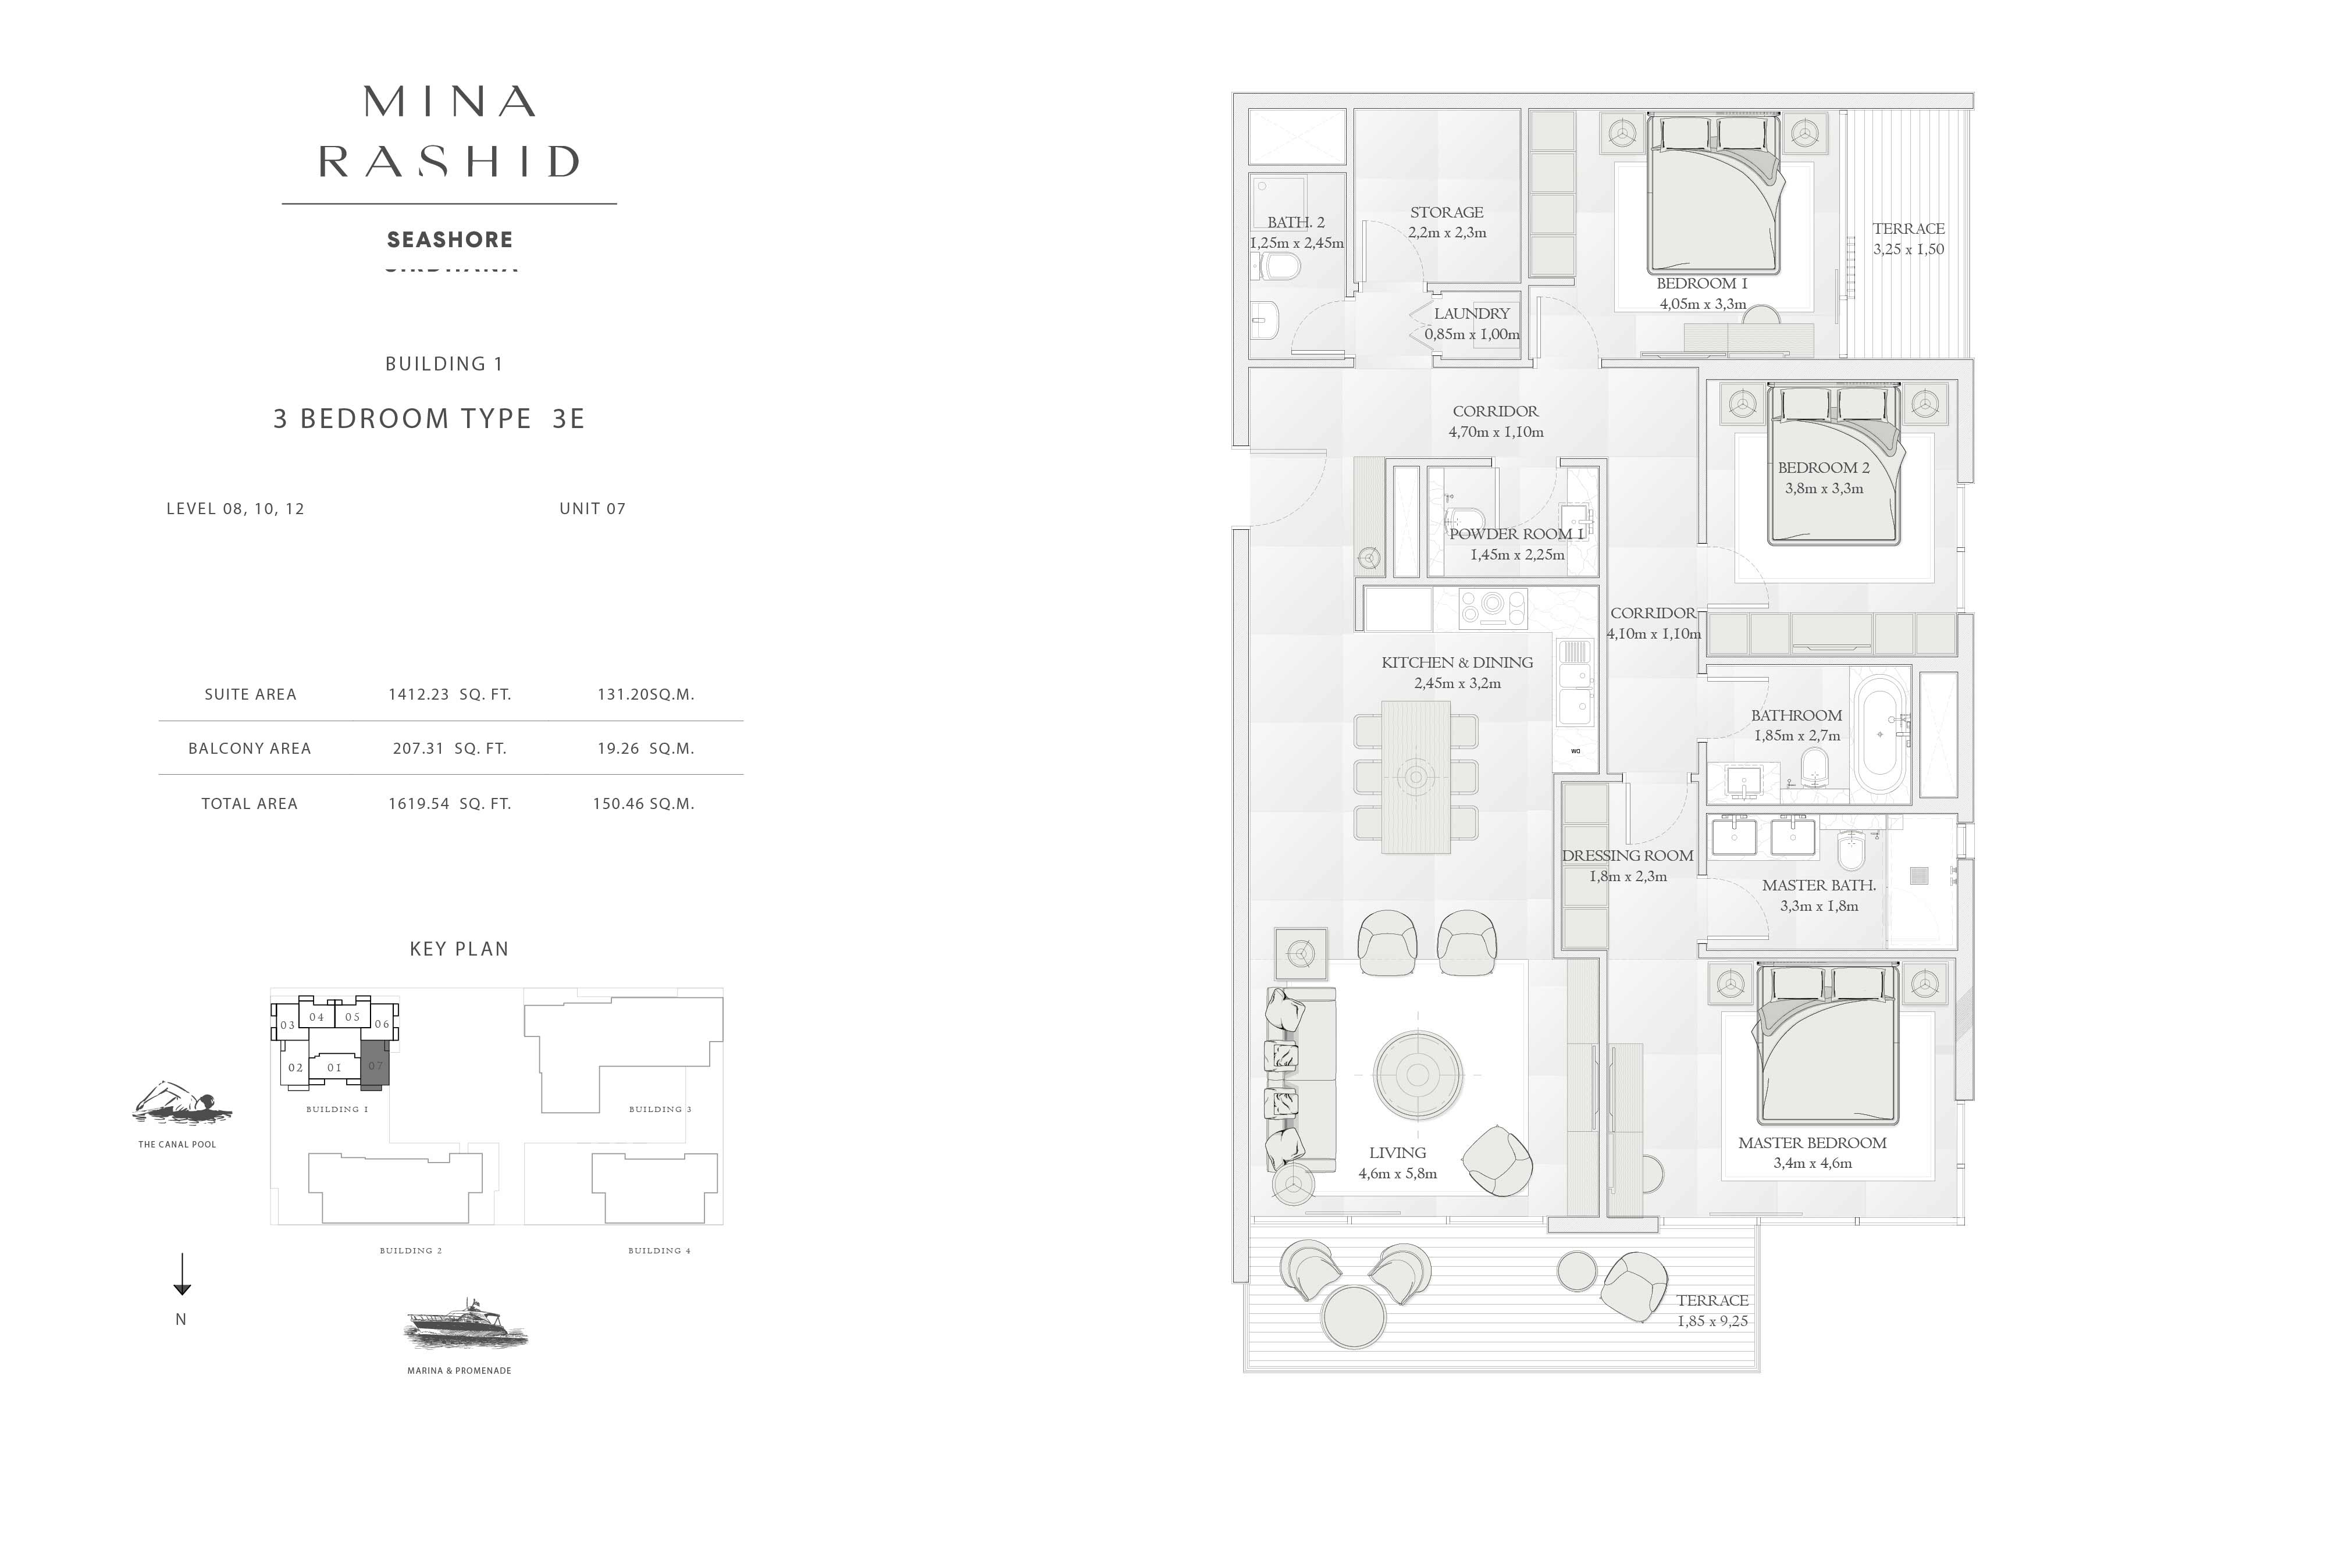 Building-1, 3-Bedroom Type-3E, Size-1619-Sq-Ft